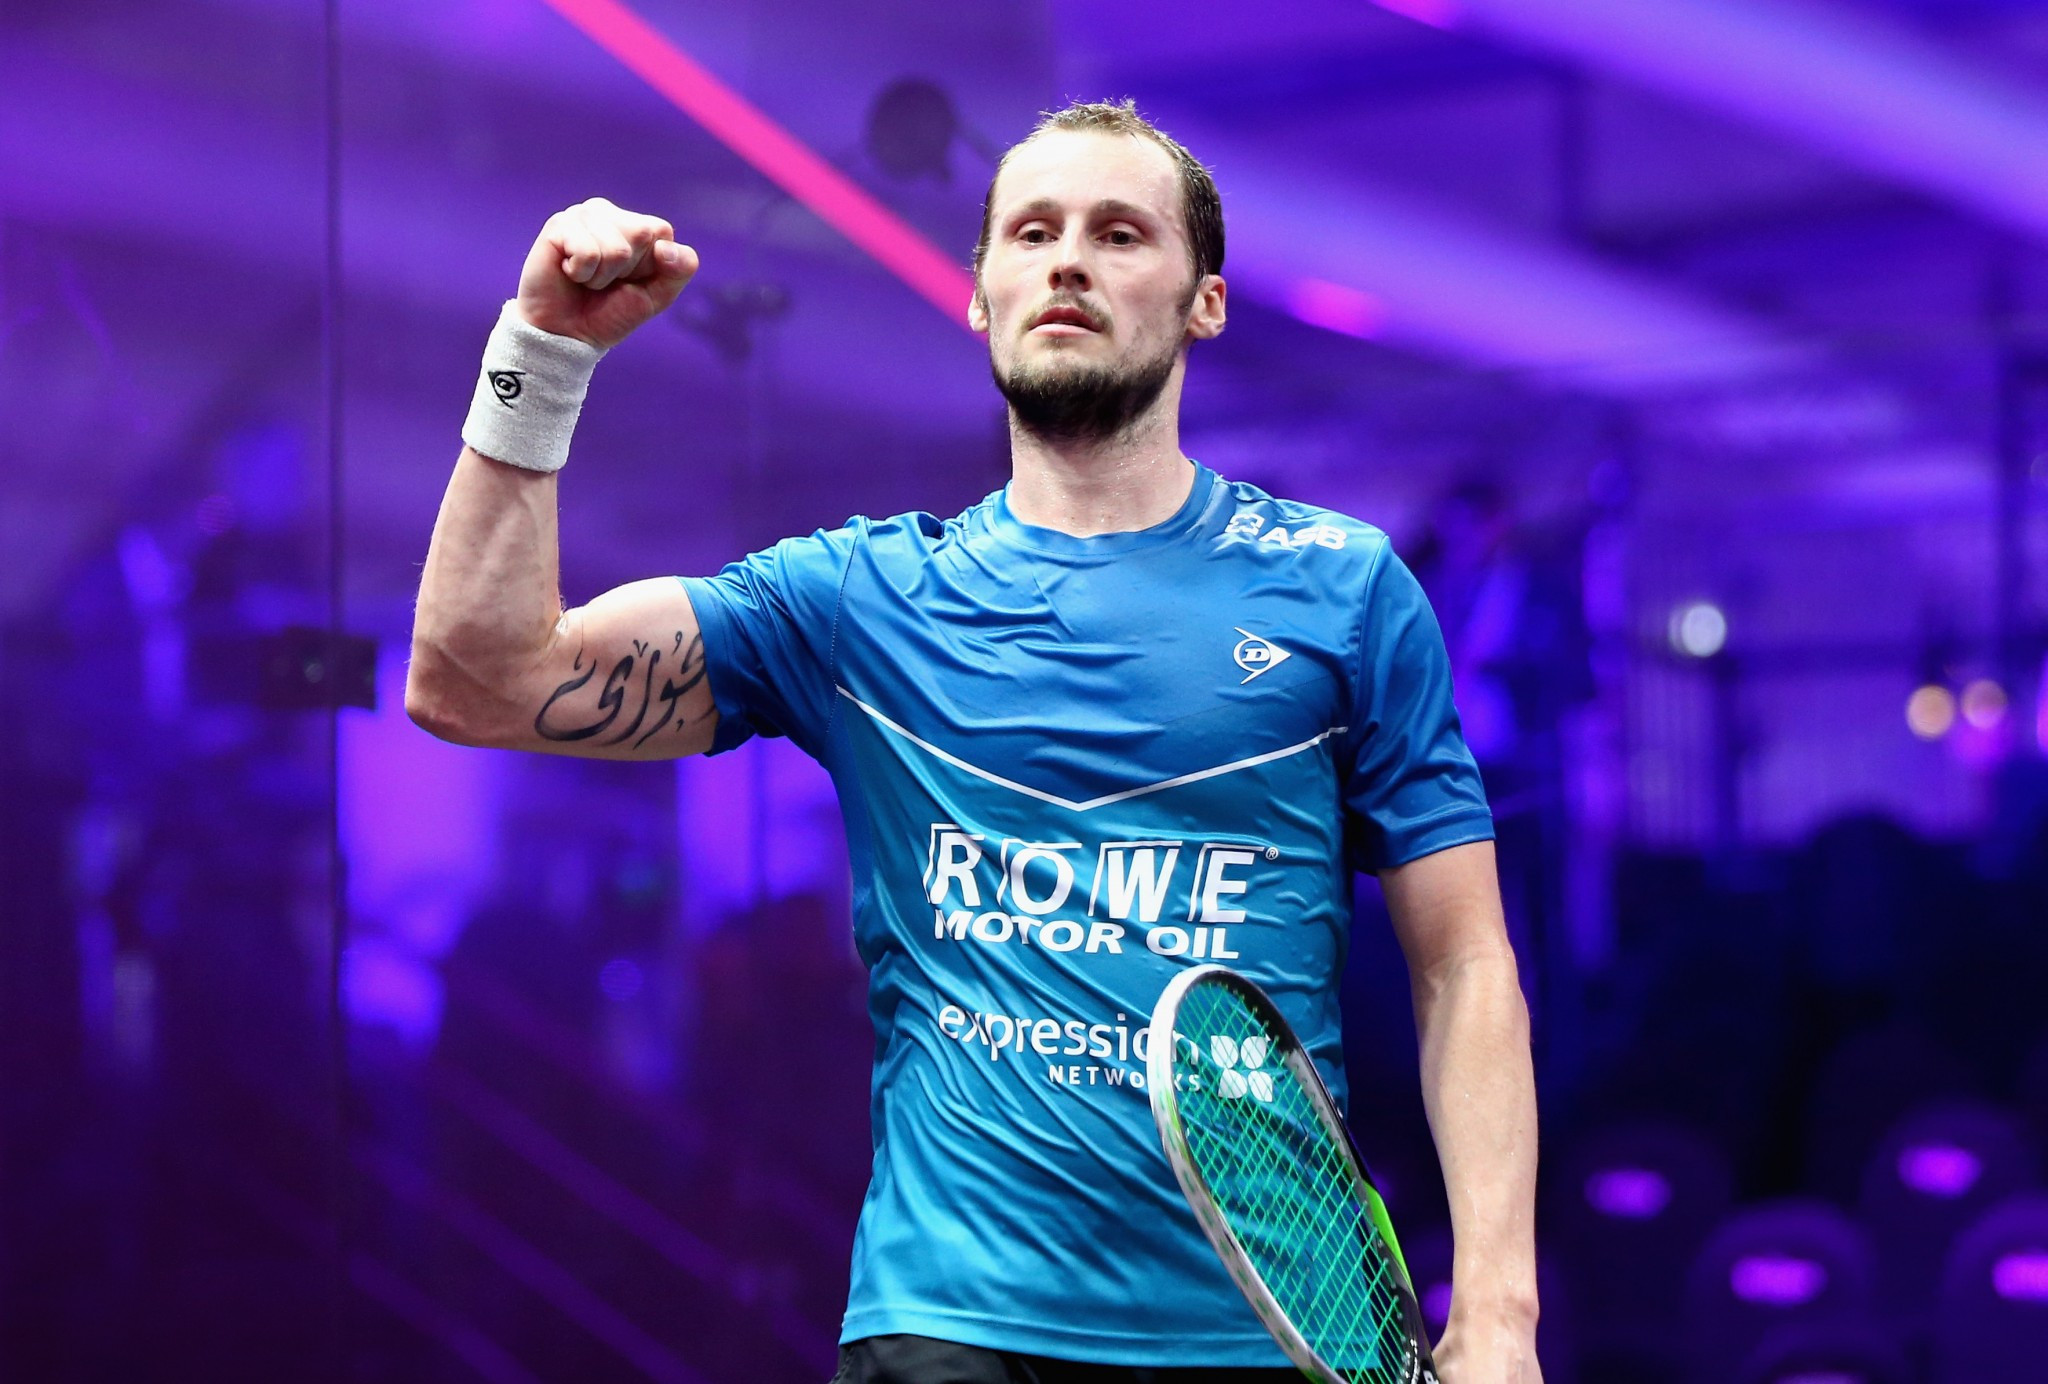 World number one Gregory Gaultier has won everything in the sport apart from the Men's World Team Championships as France look to bounce back from two final losses ©Getty Images